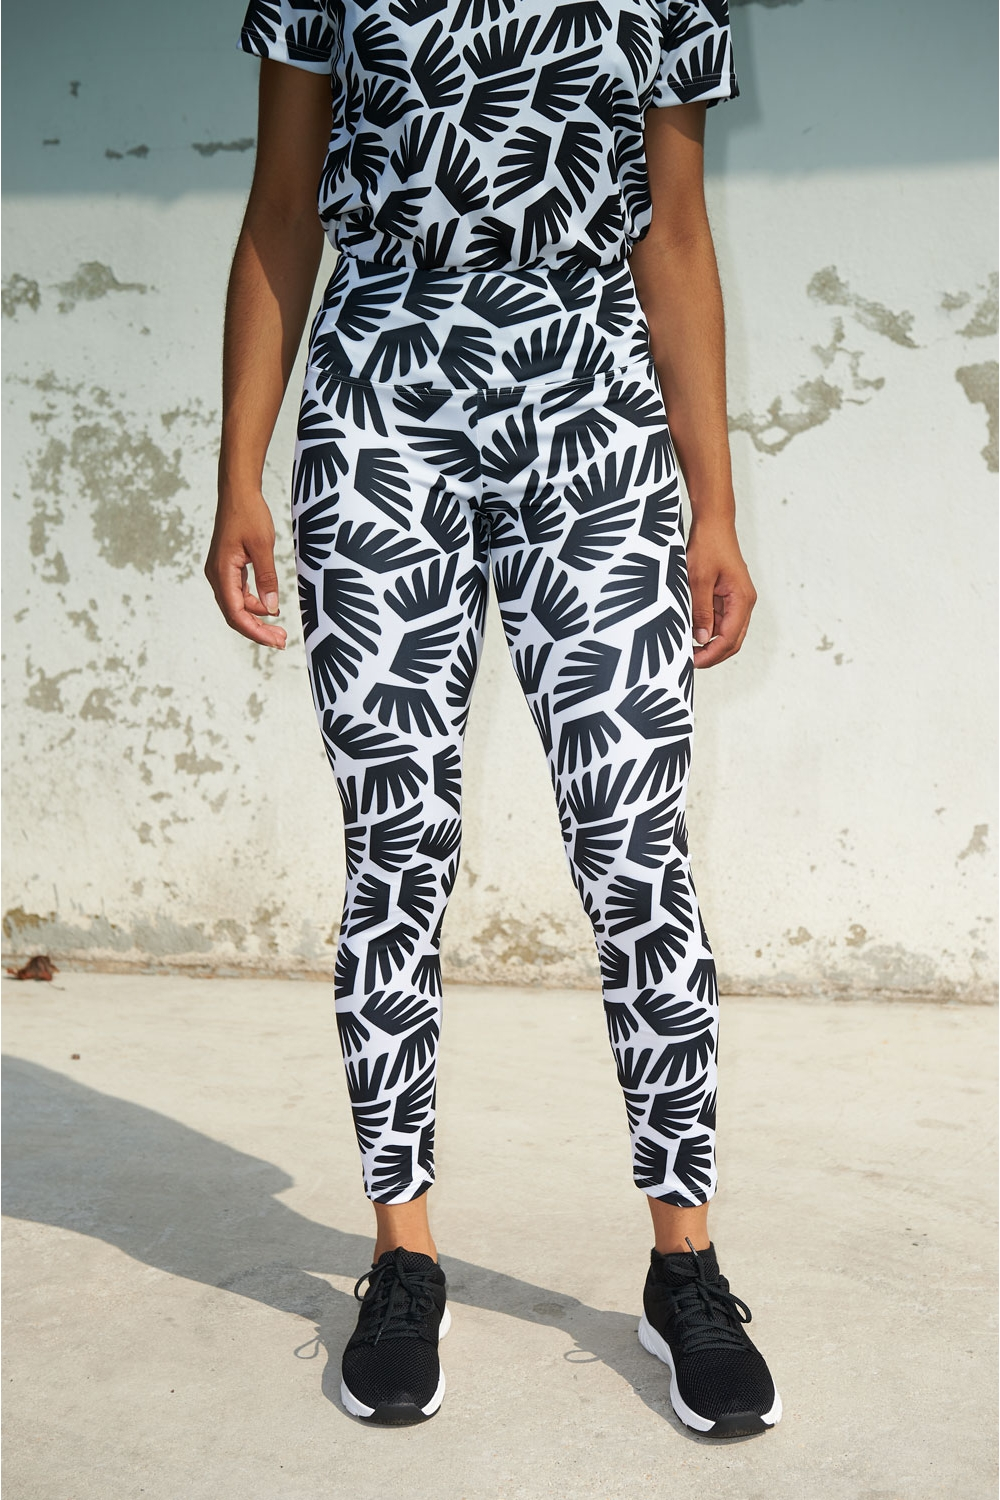 Michelle Legging - Winged pattern - Black & White - Women's Football - Front view